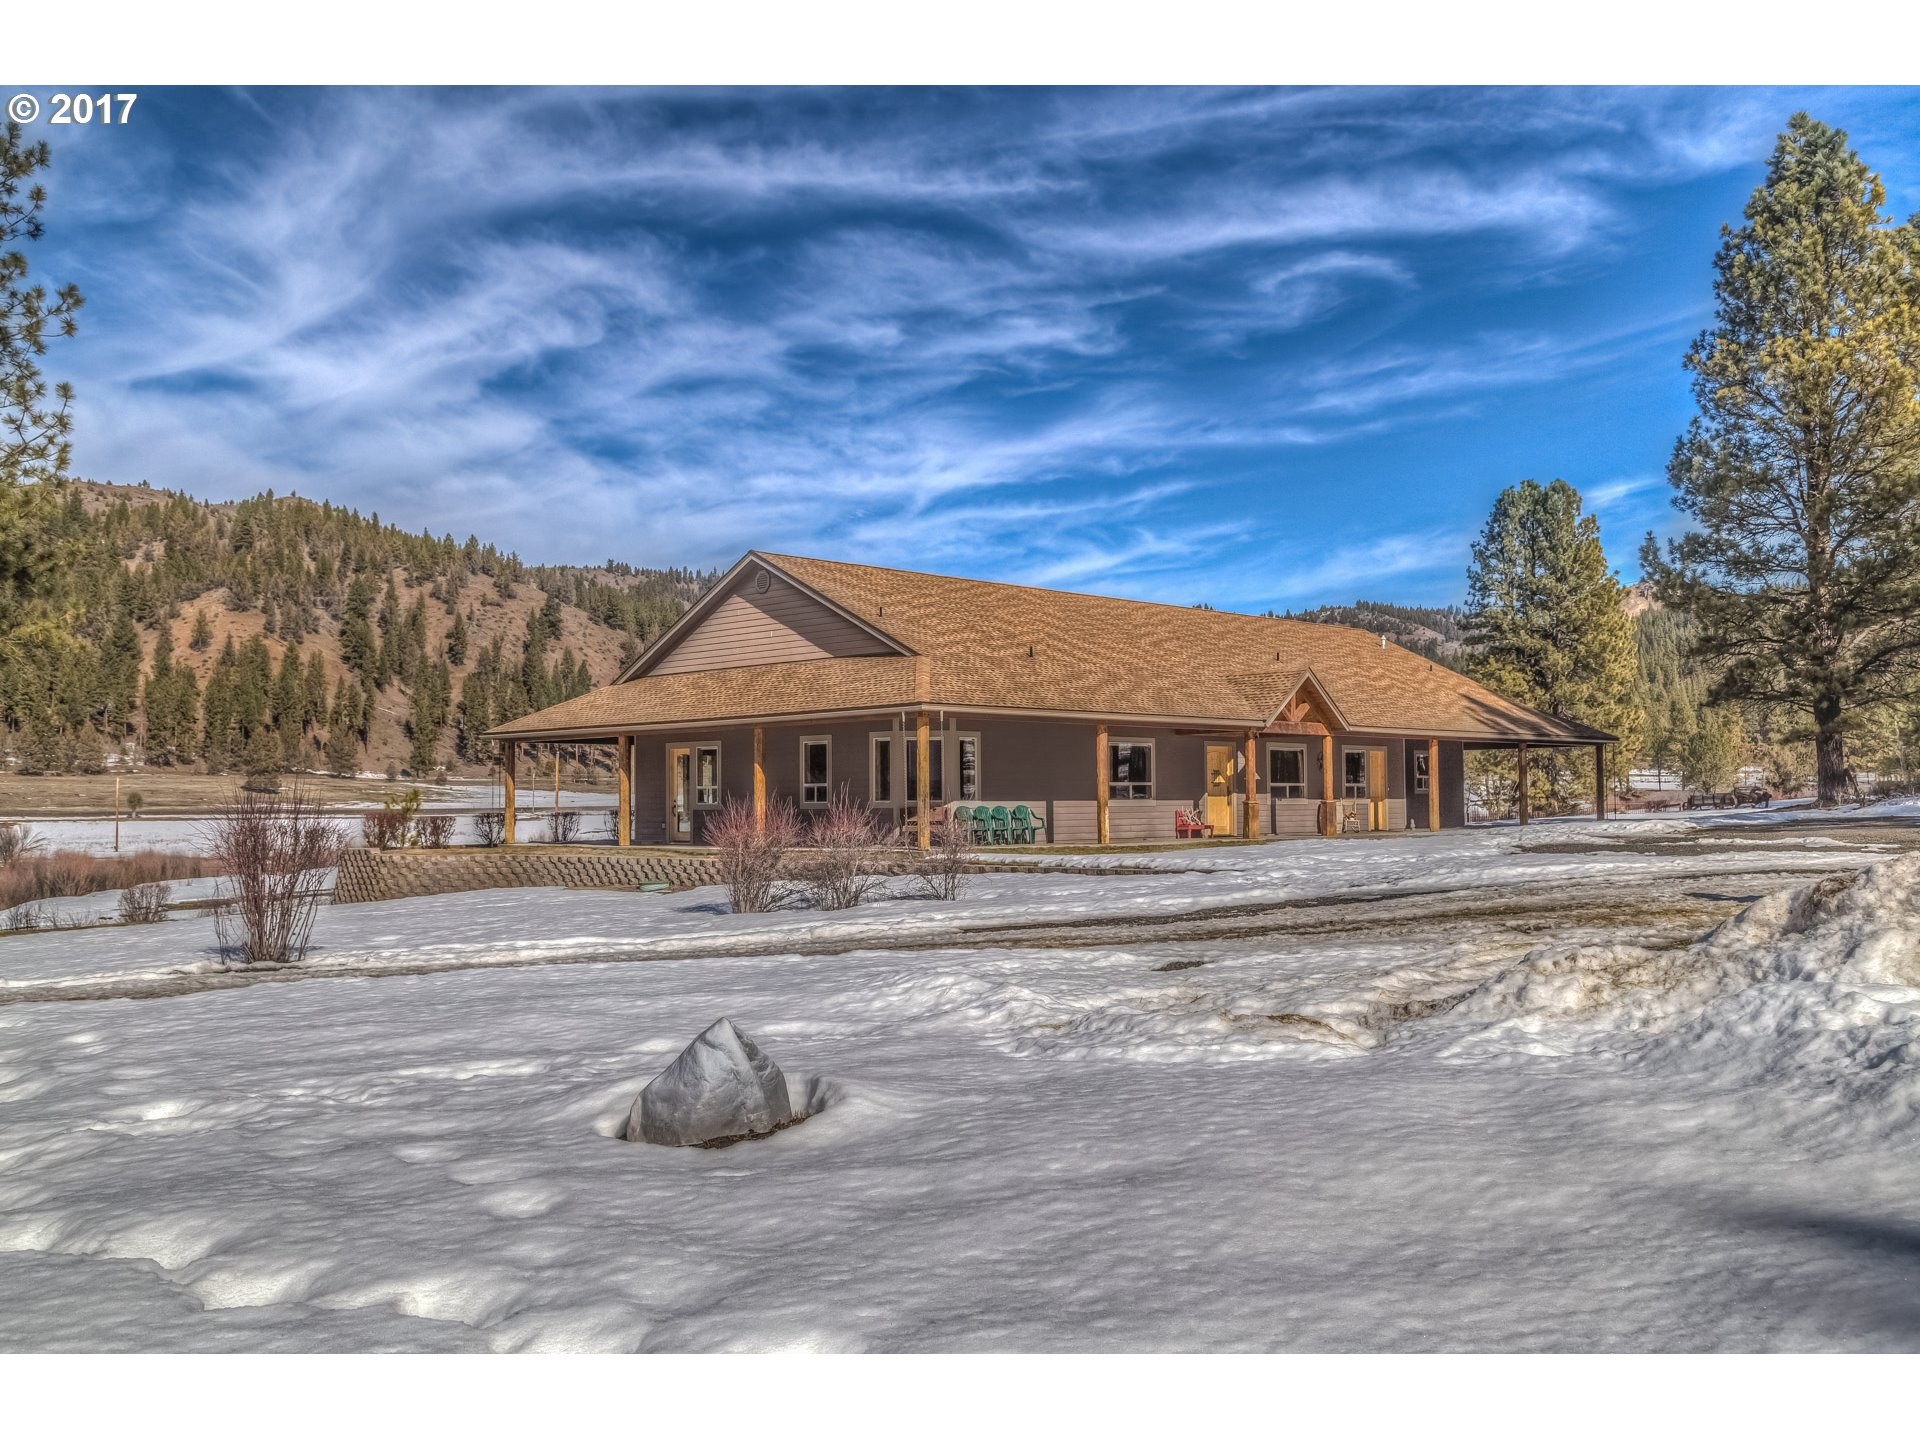 27020 NE OLD WOLF CREEK RD, Prineville, OR 97754